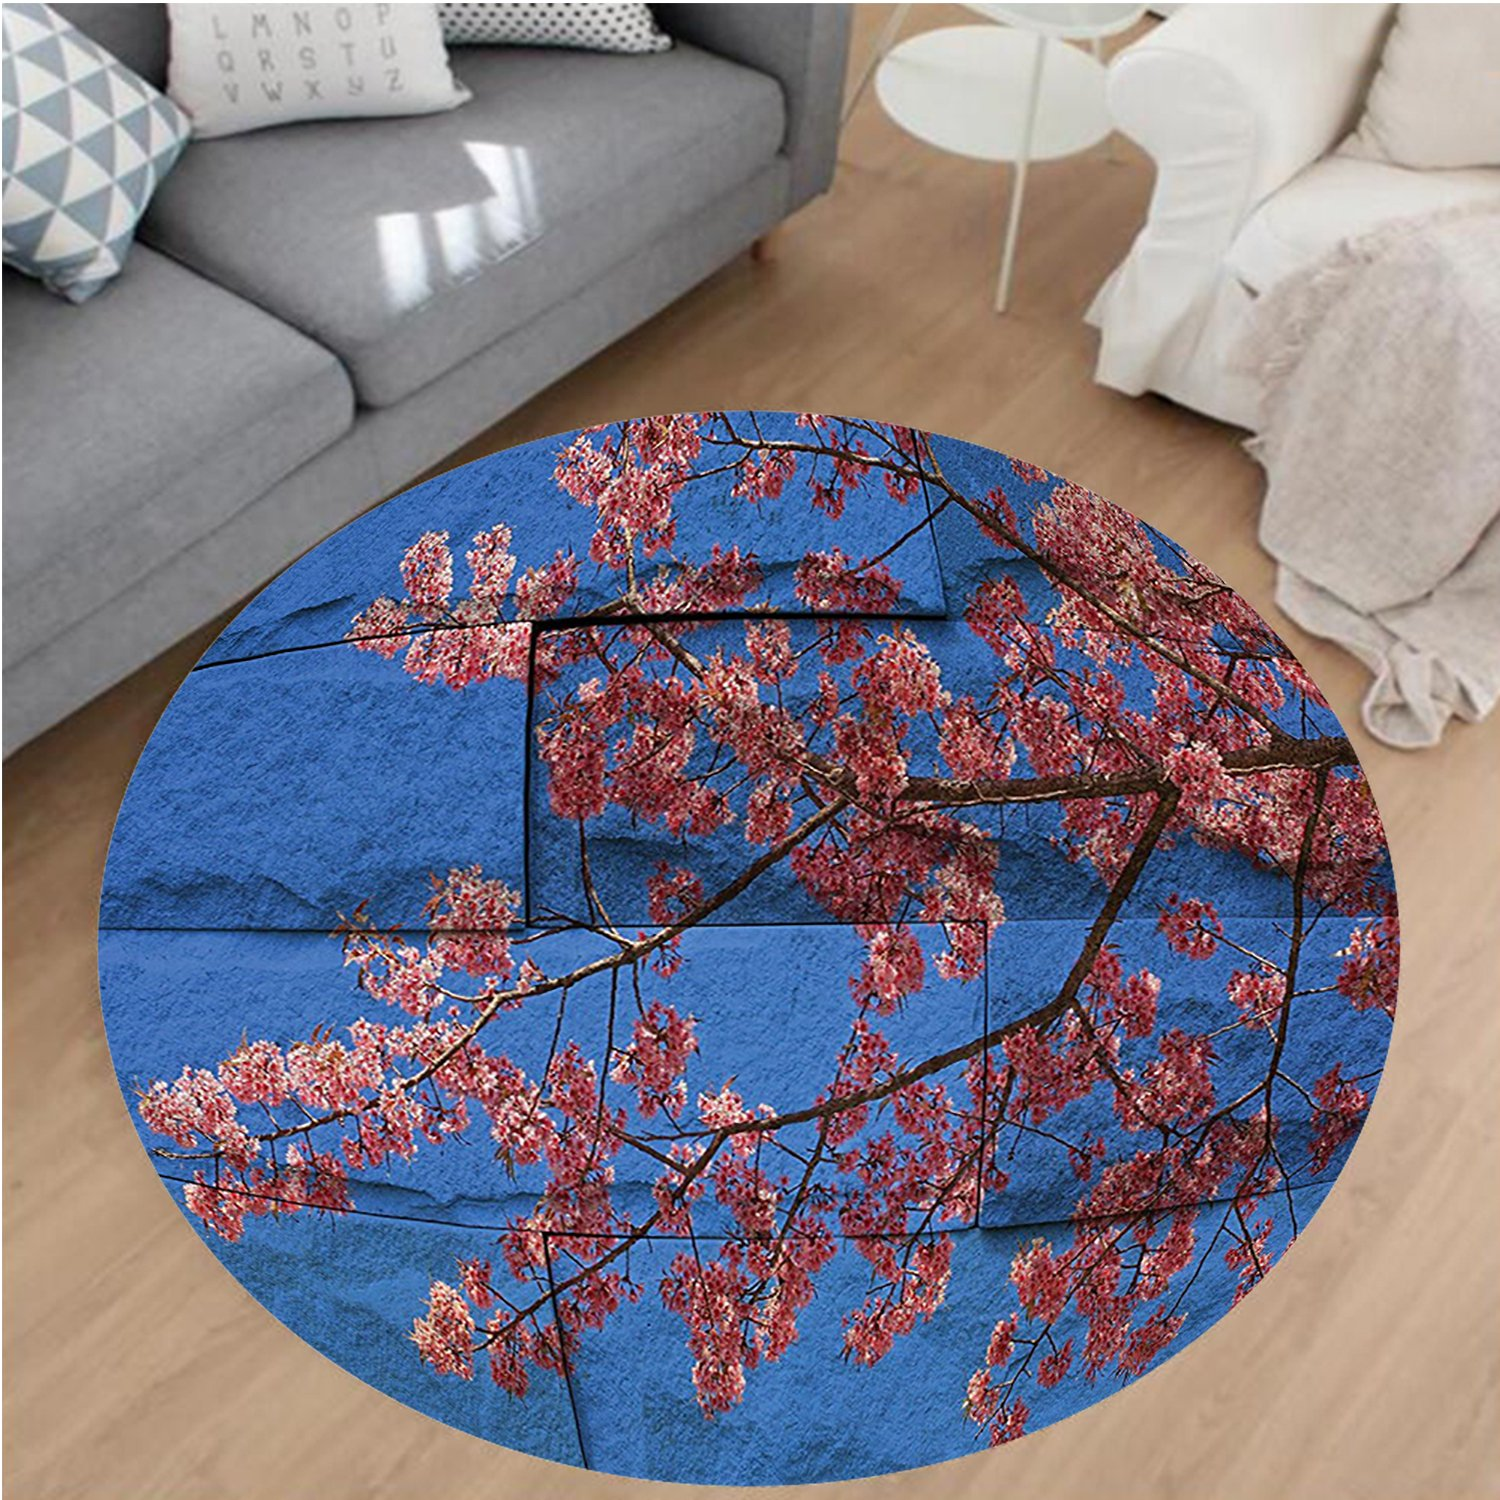 Nalahome Modern Flannel Microfiber Non-Slip Machine Washable Round Area Rug-Rustic Thai Sakura Blossom Mural Branch with Flowers Spring Floral Beauty Print Pink Blue area rugs Home Decor-Round 67'' by Nalahome